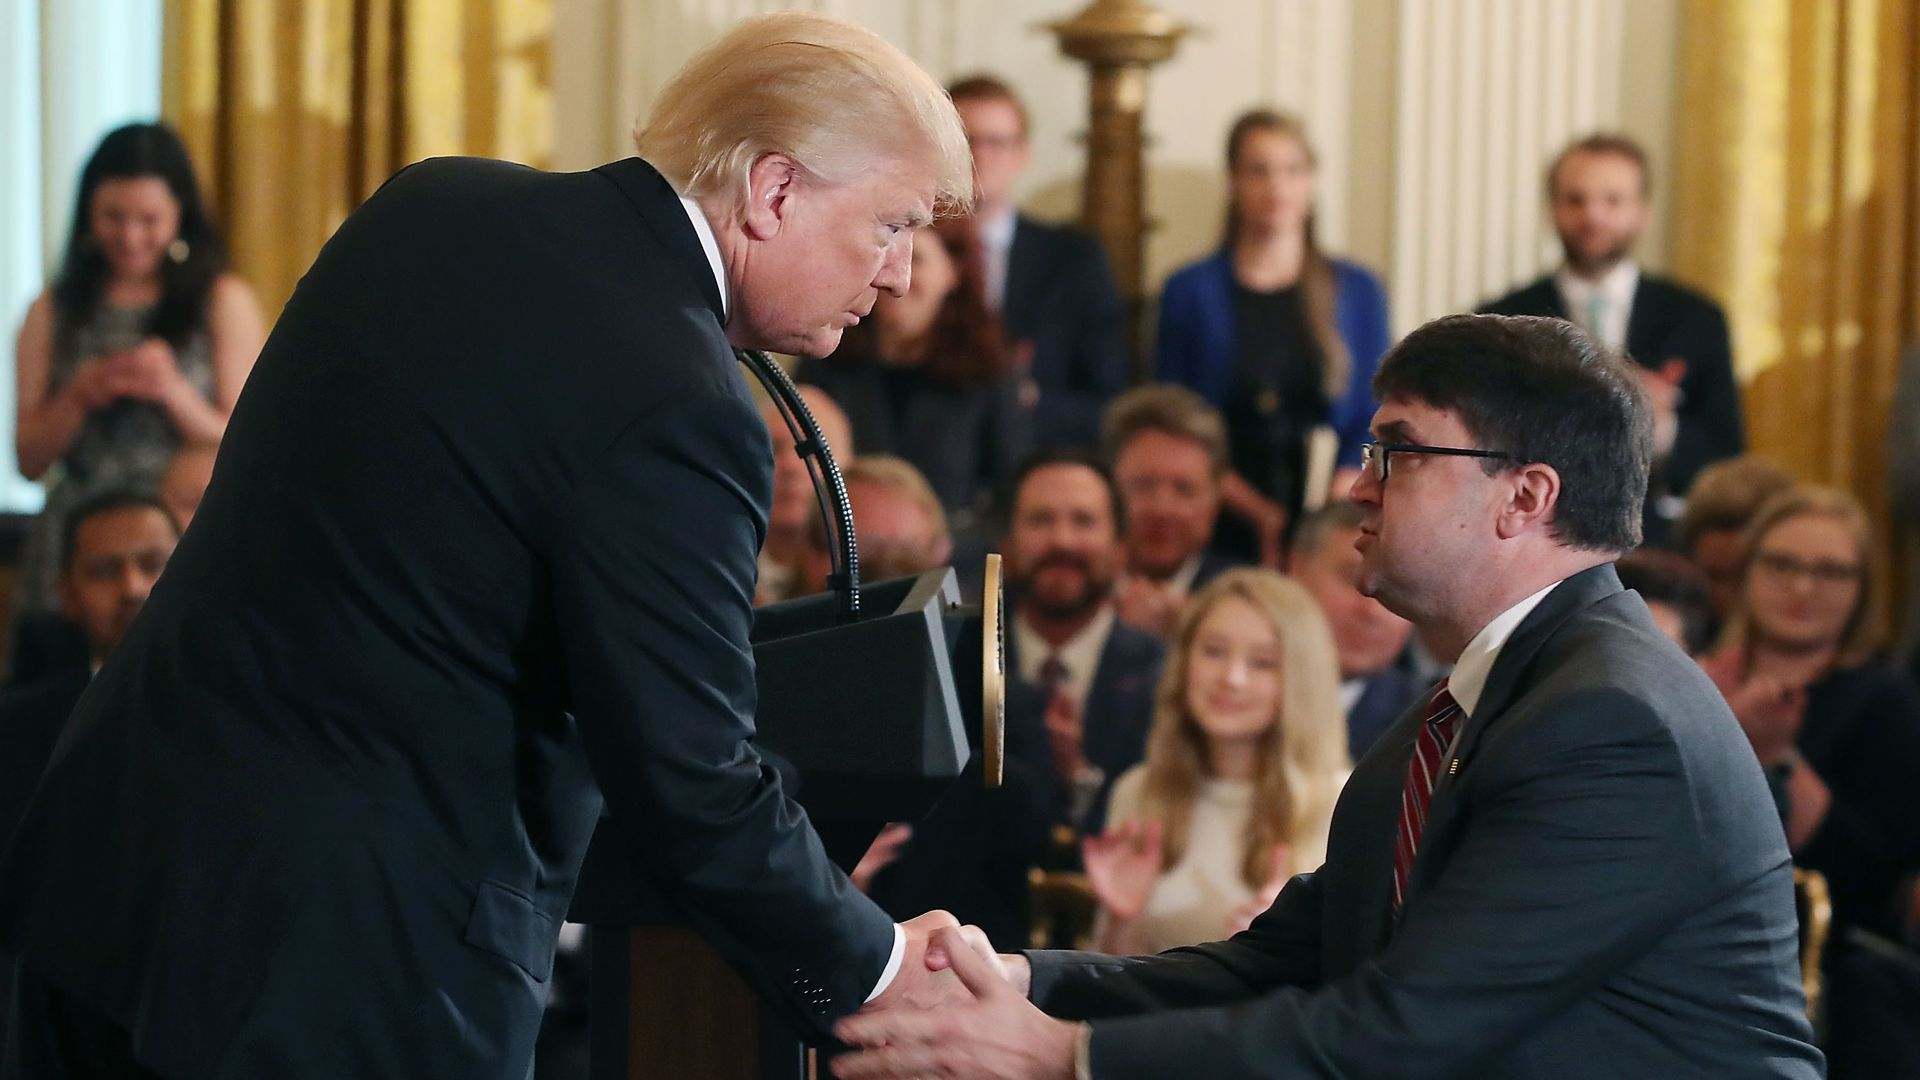 President Donald Trump leans down to shake hands with Robert Wilkie after nominating him to be next Veterans Affairs Secretary, during an event in the East Room at the White House